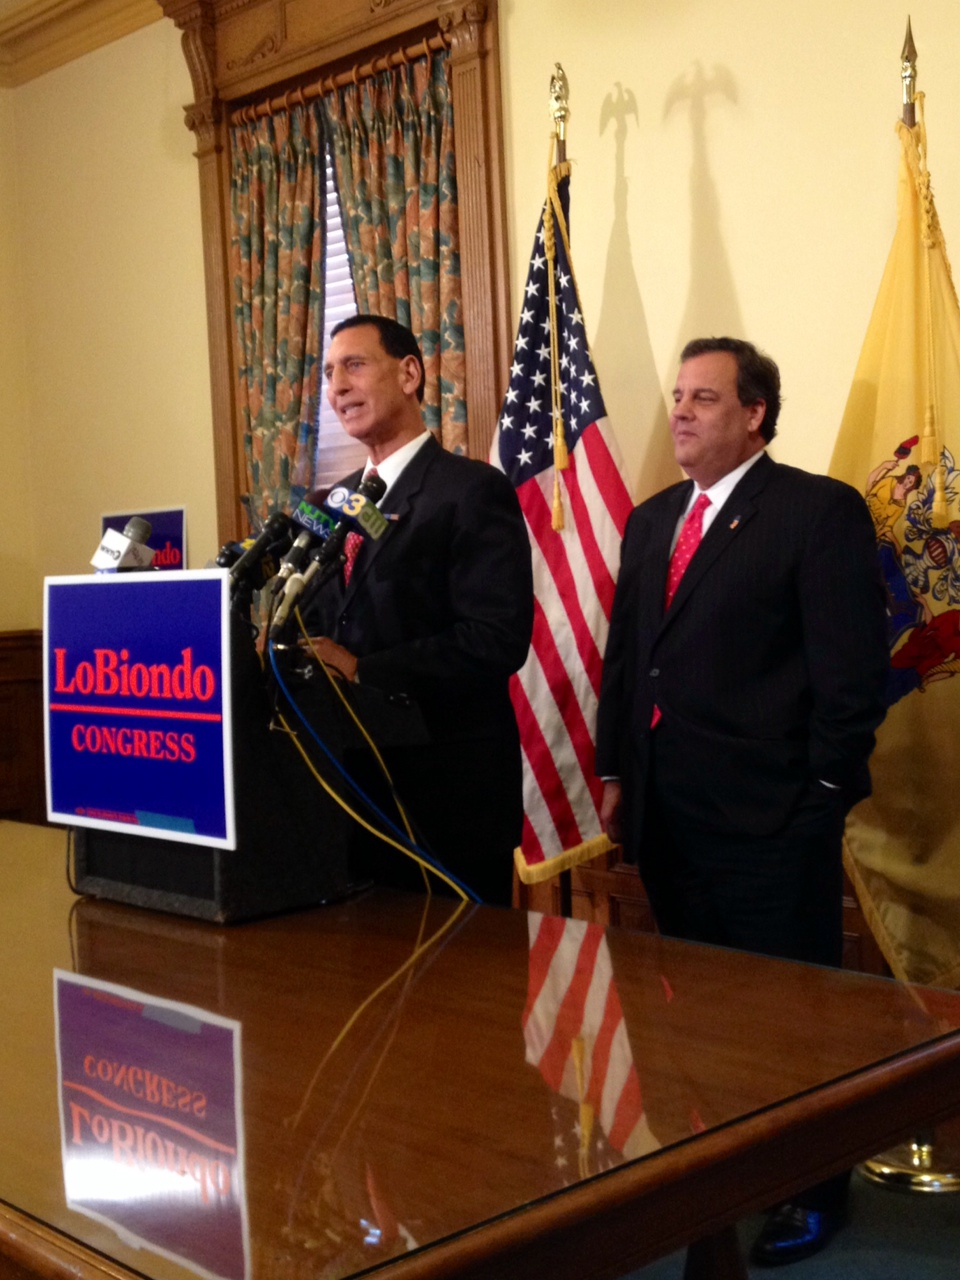 Christie 'all in' on sending LoBiondo back to Congress for another term